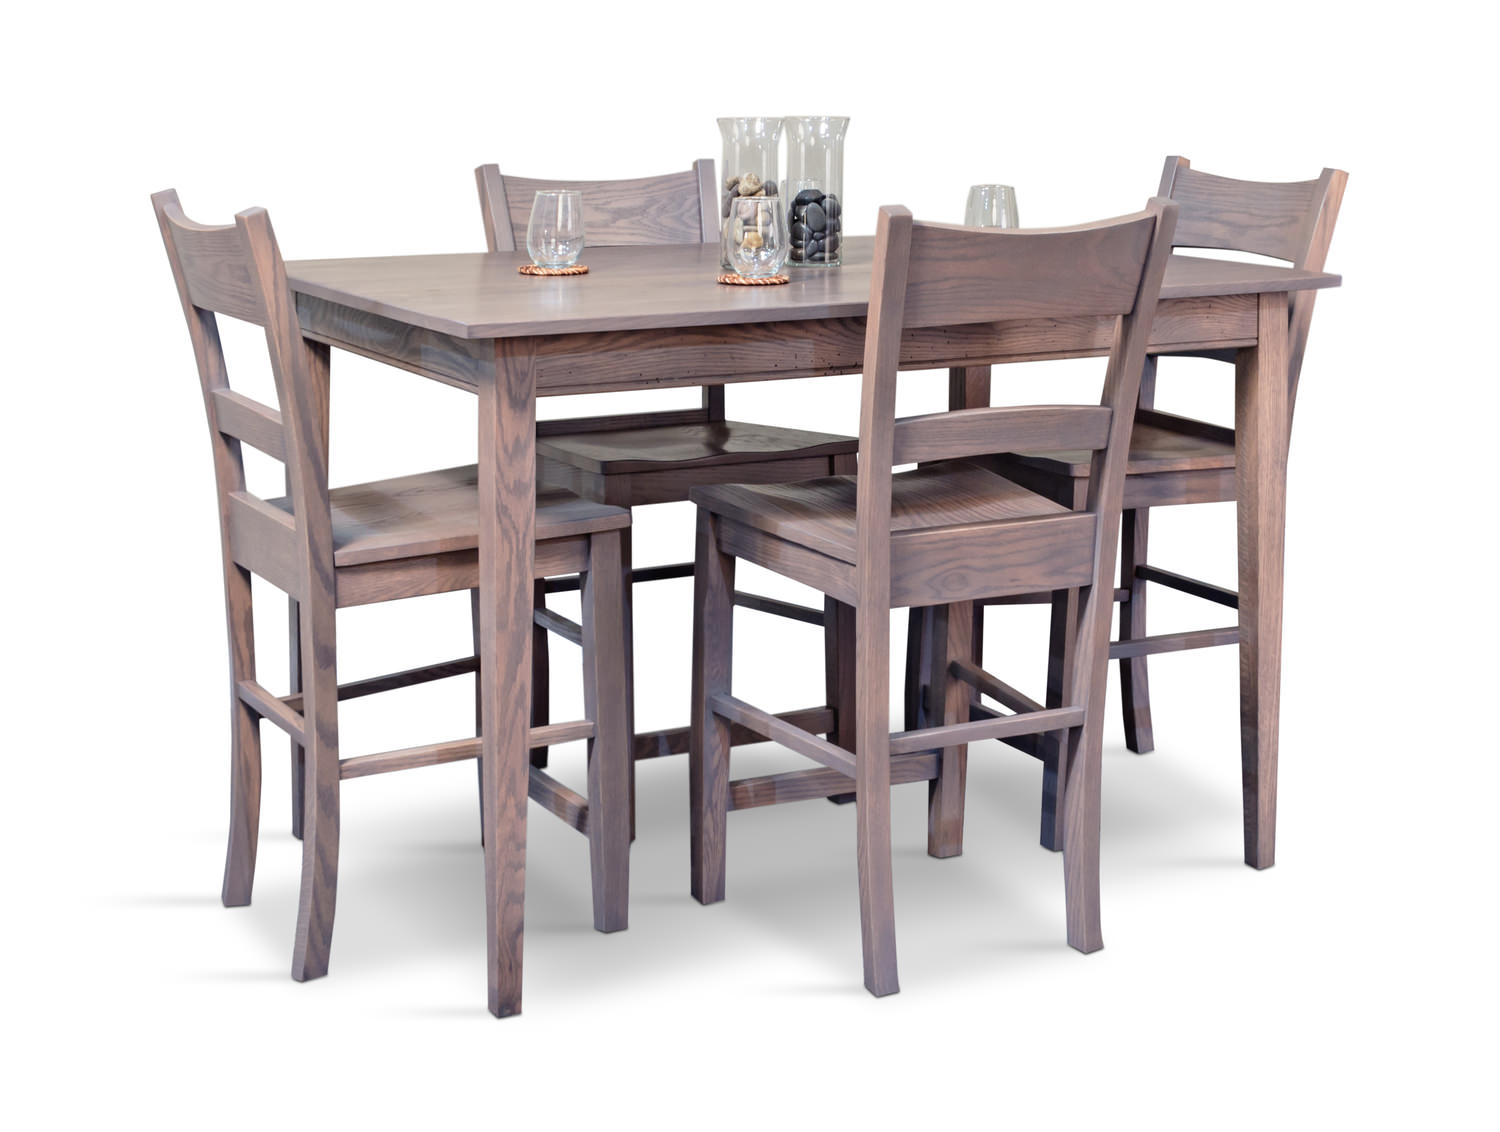 Lancaster Fog Tapered Leg Counter Table With 4 Carson Stools Throughout Most Current Carson Counter Height Tables (View 9 of 25)